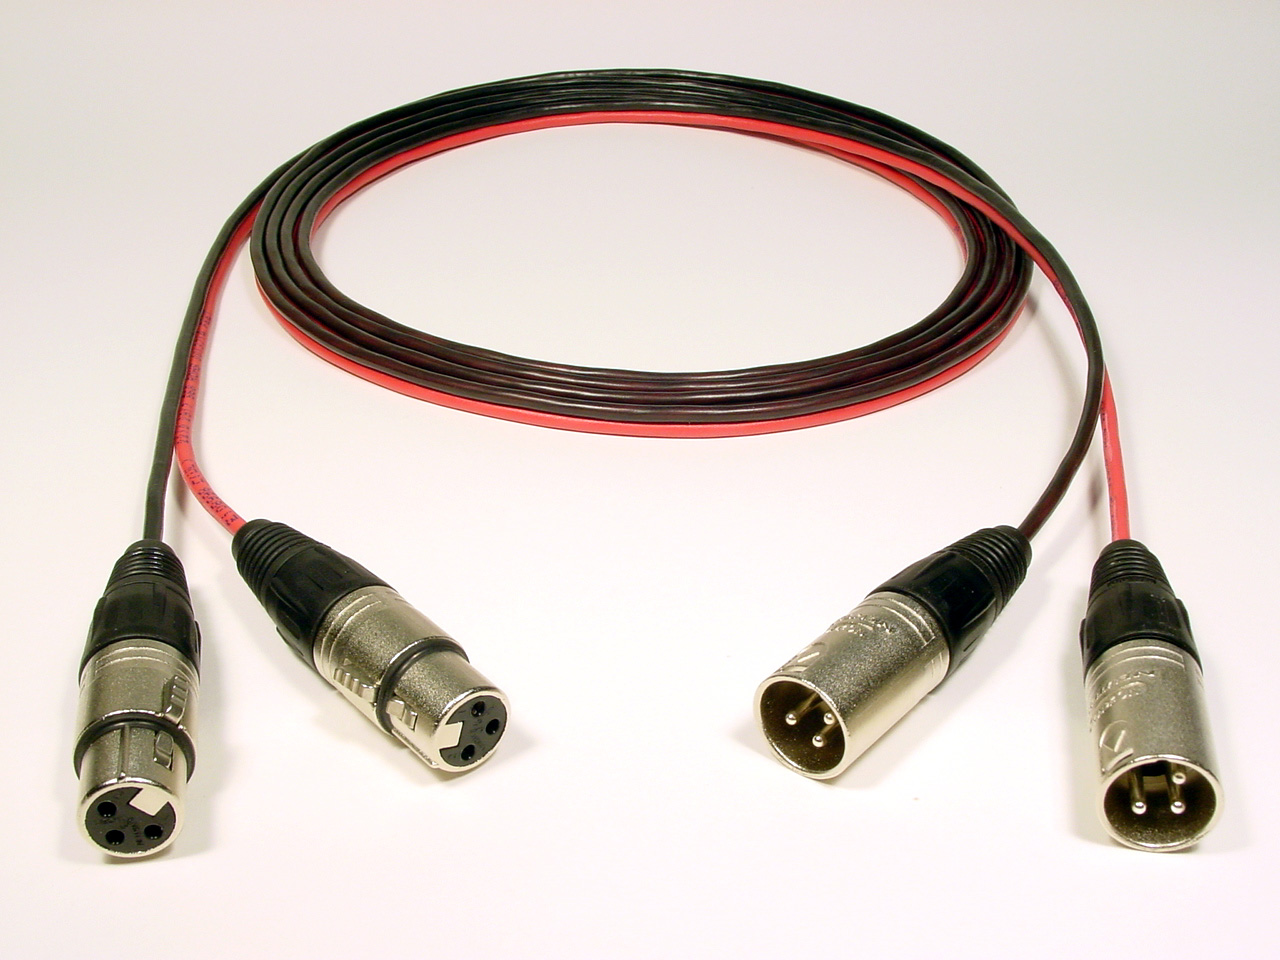 hight resolution of 2 channel female xlr to male xlr immaculate connections studio wiring specialists